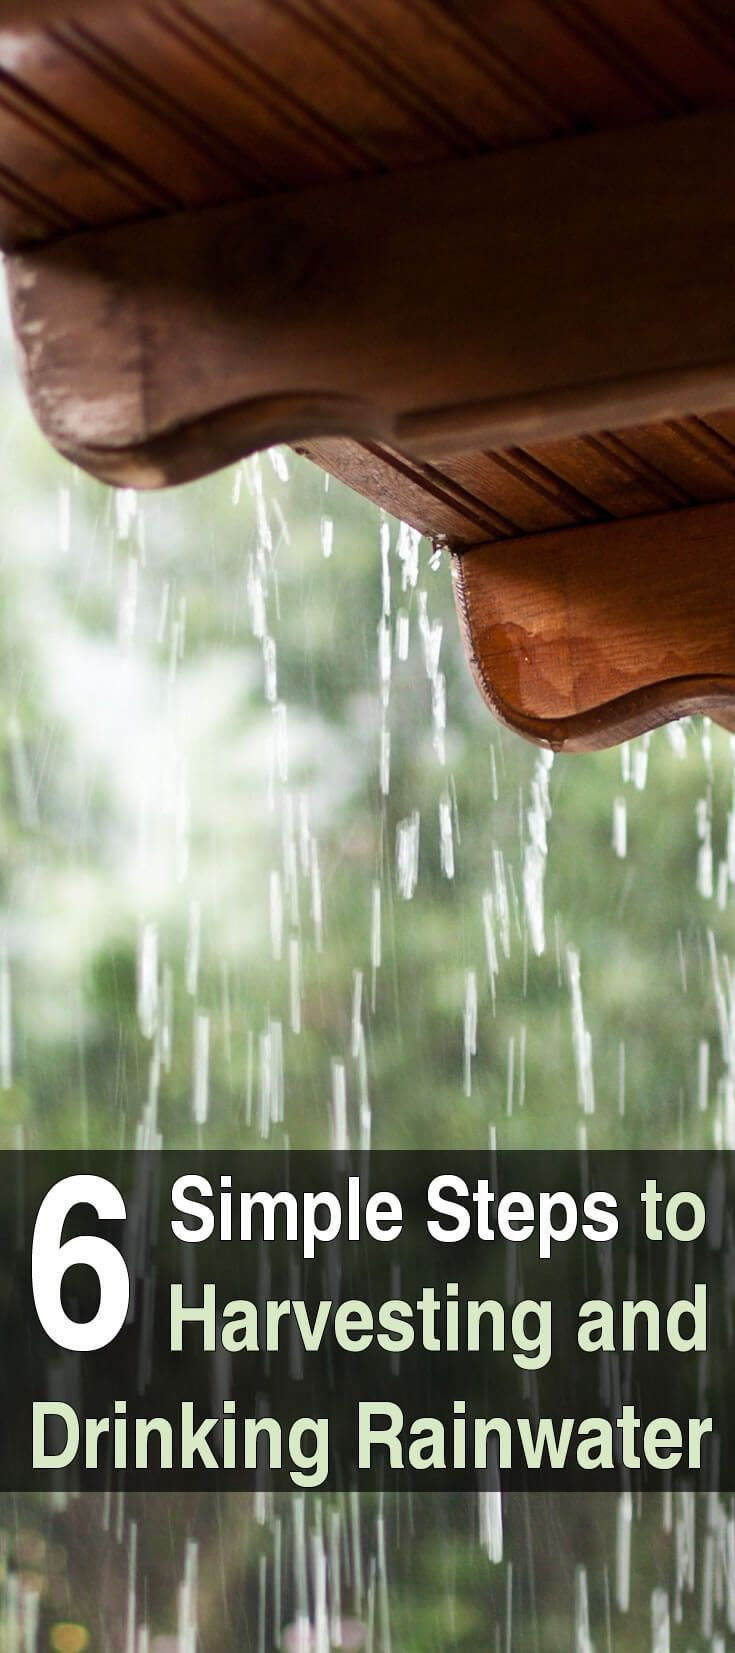 Harvesting rainwater is an ability any long-term prepper should have. However, there are more considerations than you might expect.